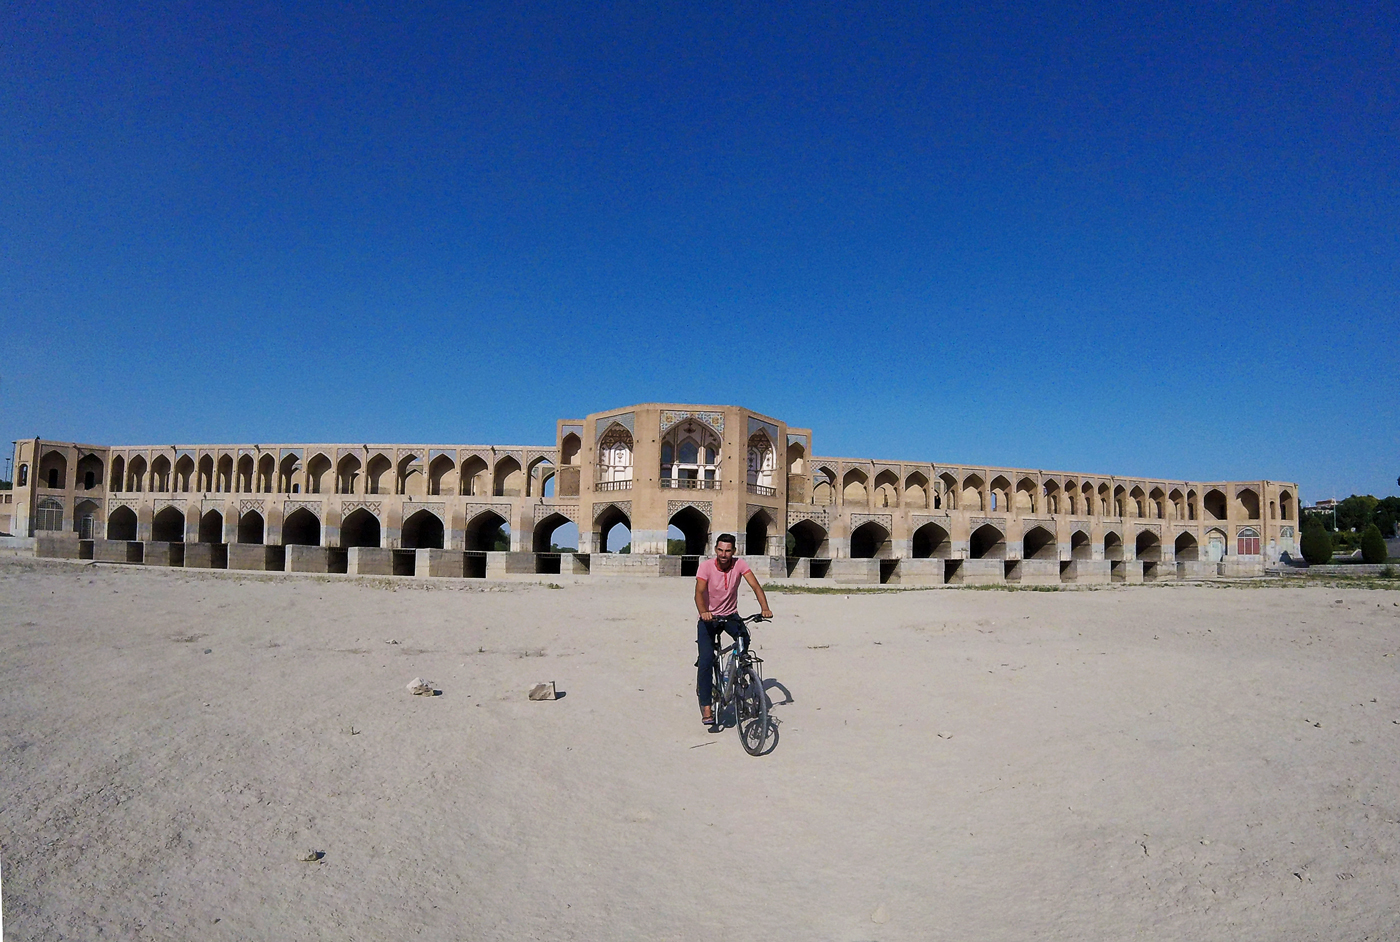 Voyage à vélo, traverser l'Iran à vélo, pont sur la rivière à Isfahan. Cycling travel, biketouring, cycling Iran, bridge over the river in Isfahan.